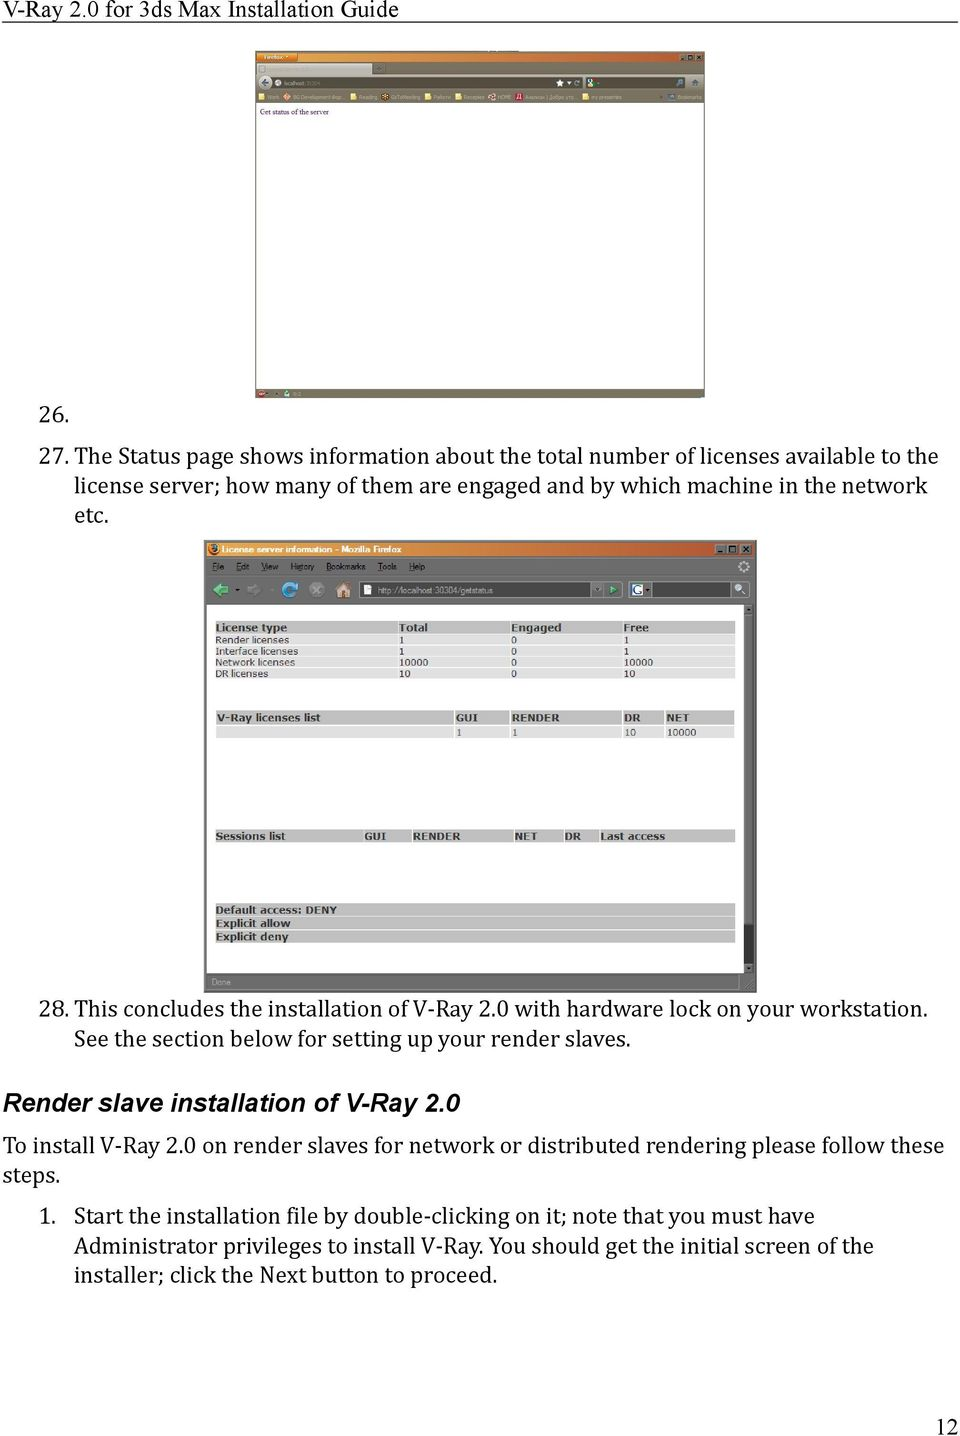 V-Ray 2 0 for 3ds Max Installation Guide - PDF